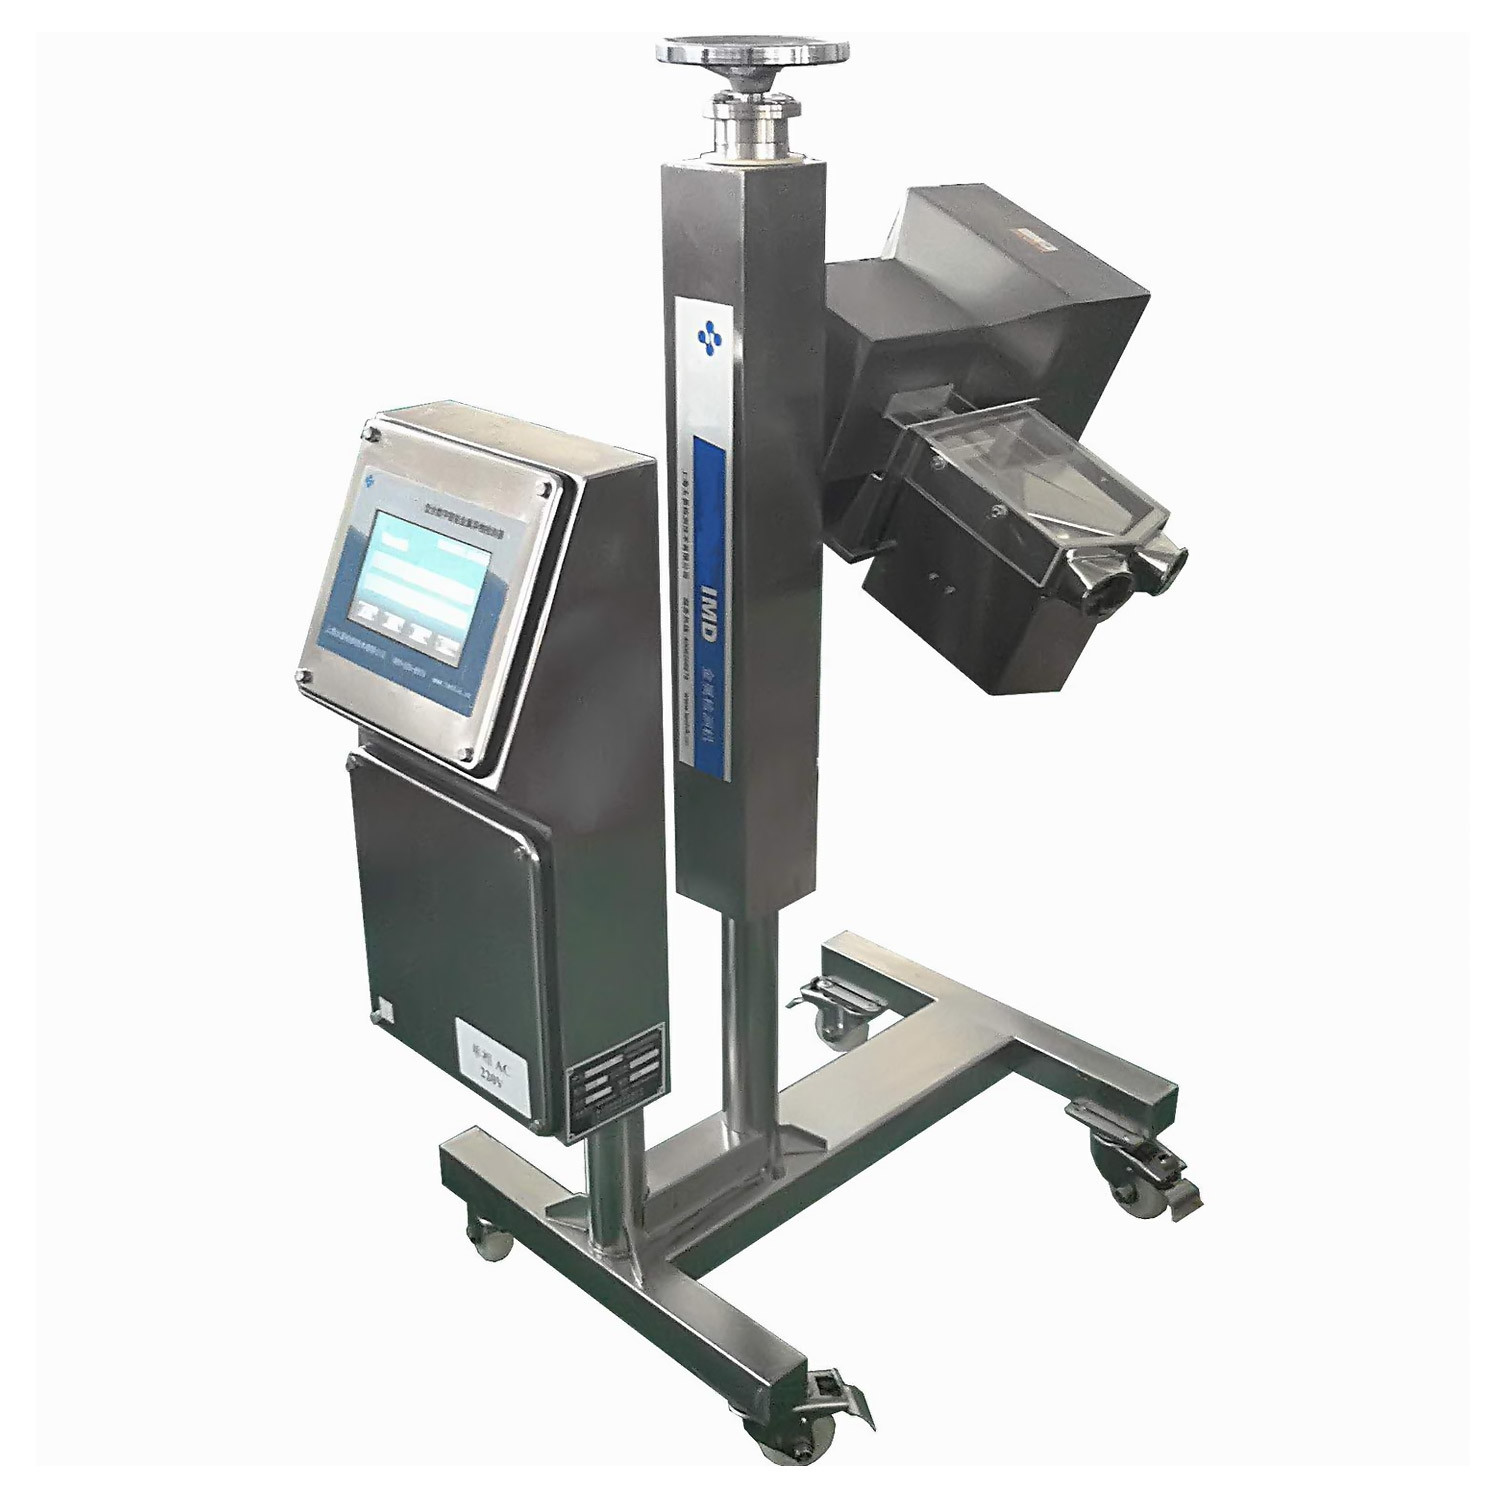 Metal Detector Jl-IMD/M for Tablet, Capsule Inspection